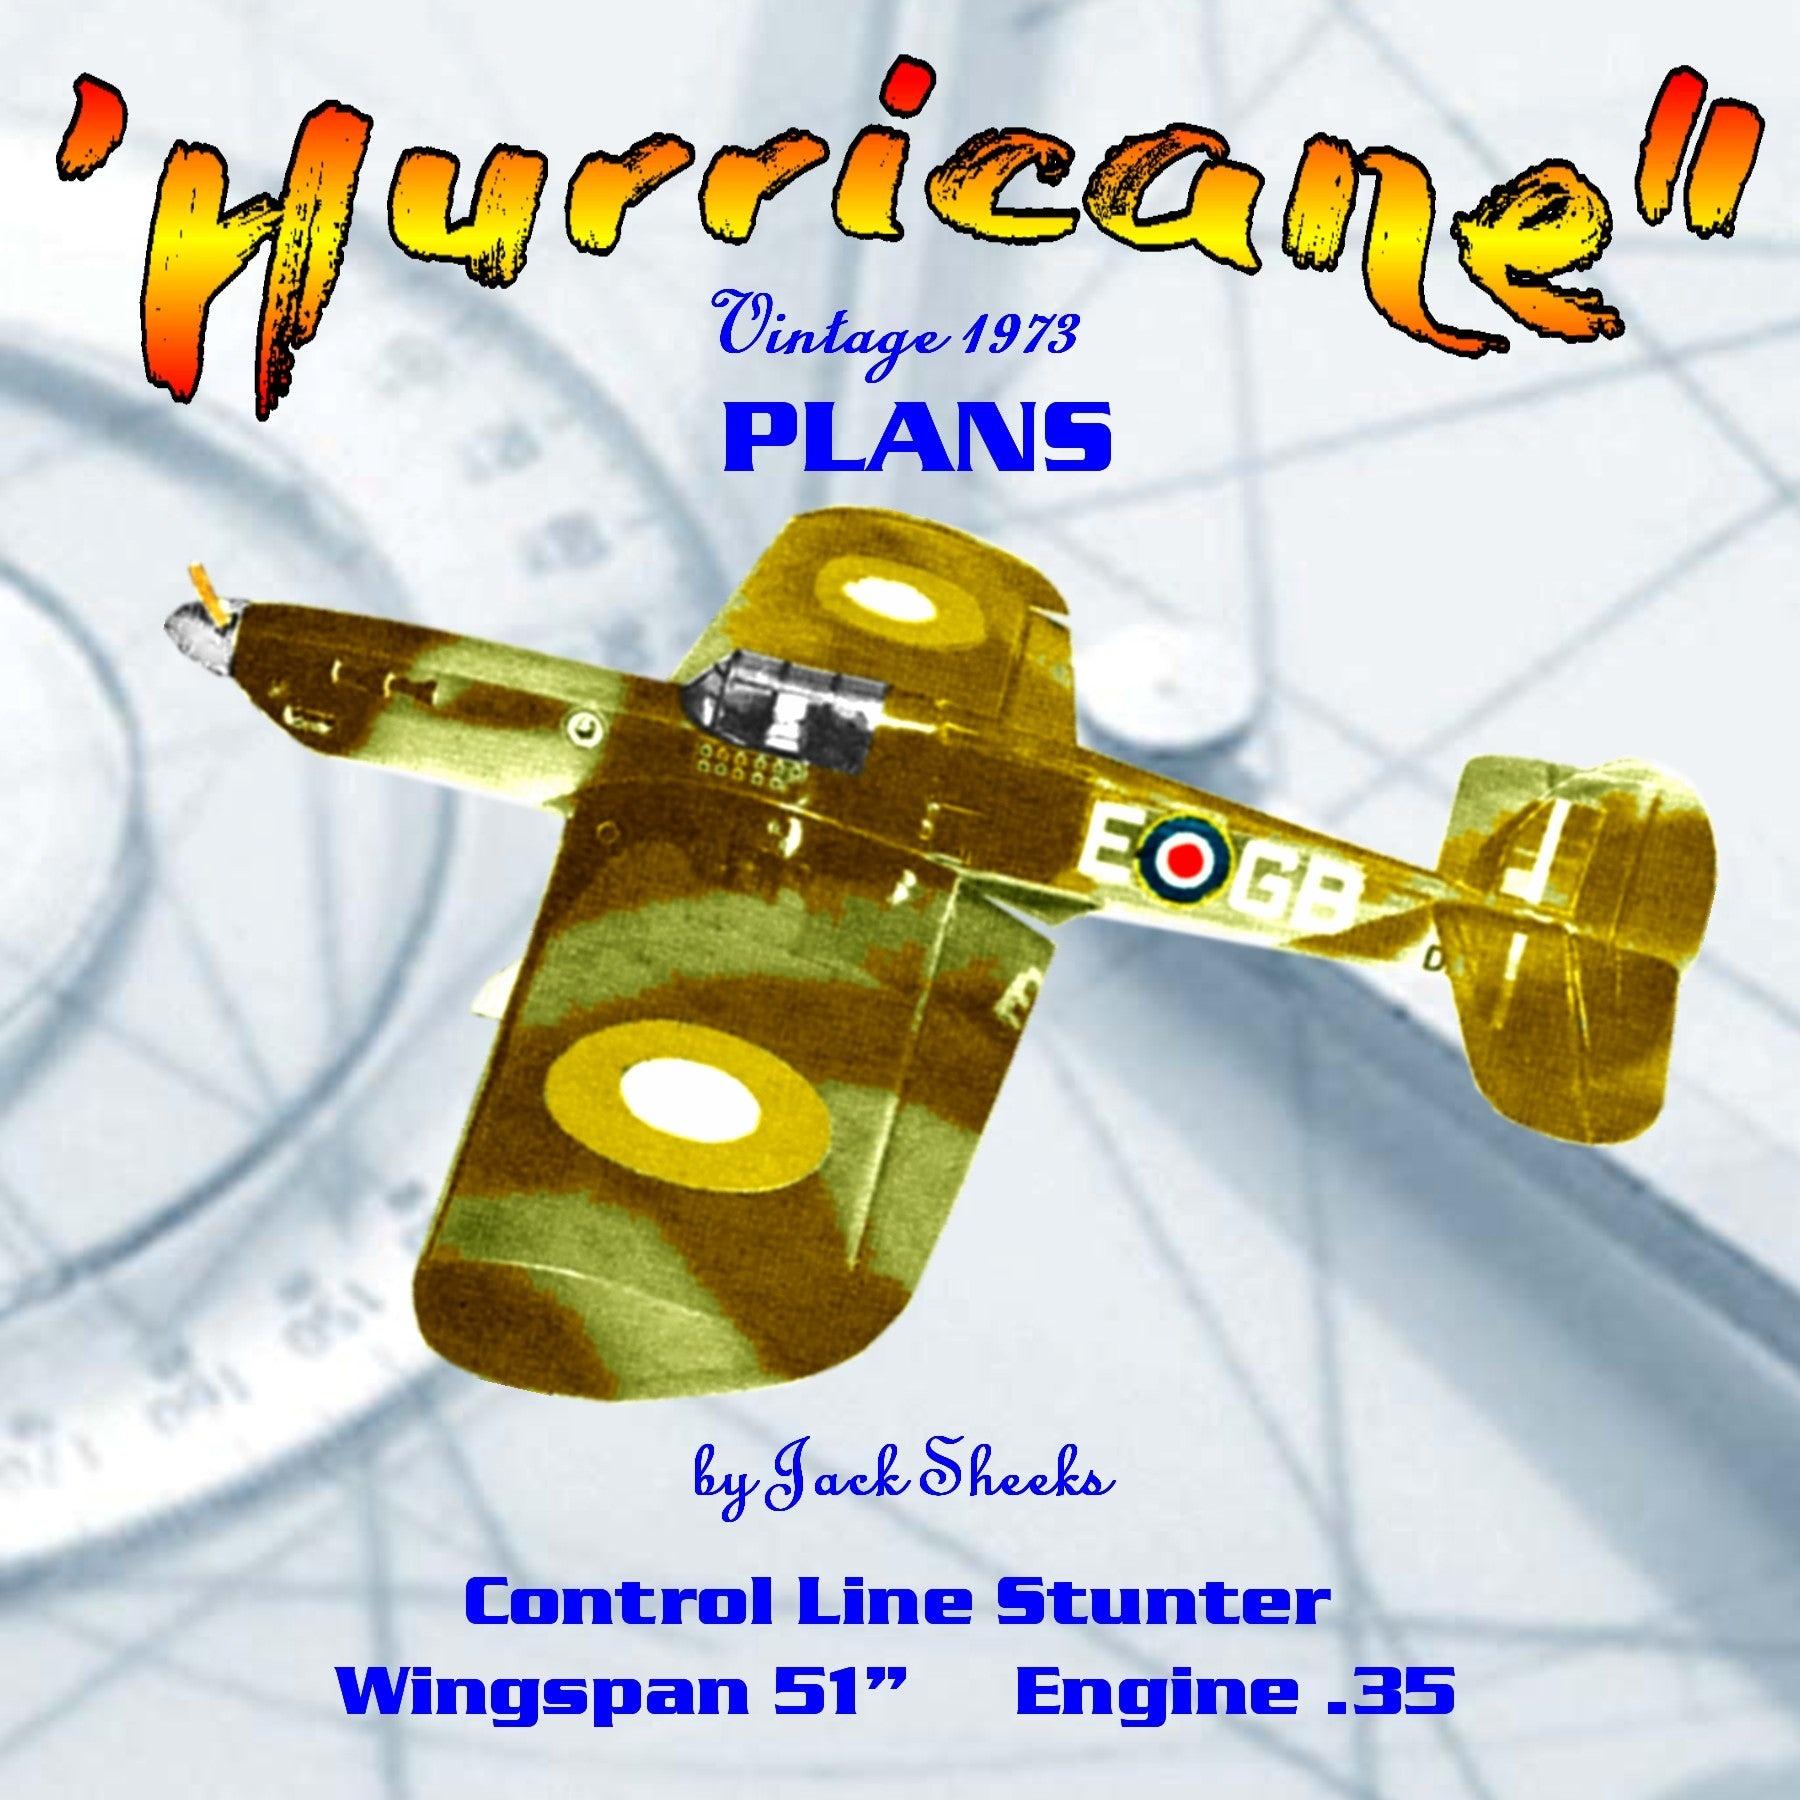 "Full size printed plans  Vintage 1973 Control Line Stunter ""Hurricane"" will try not to let you down."